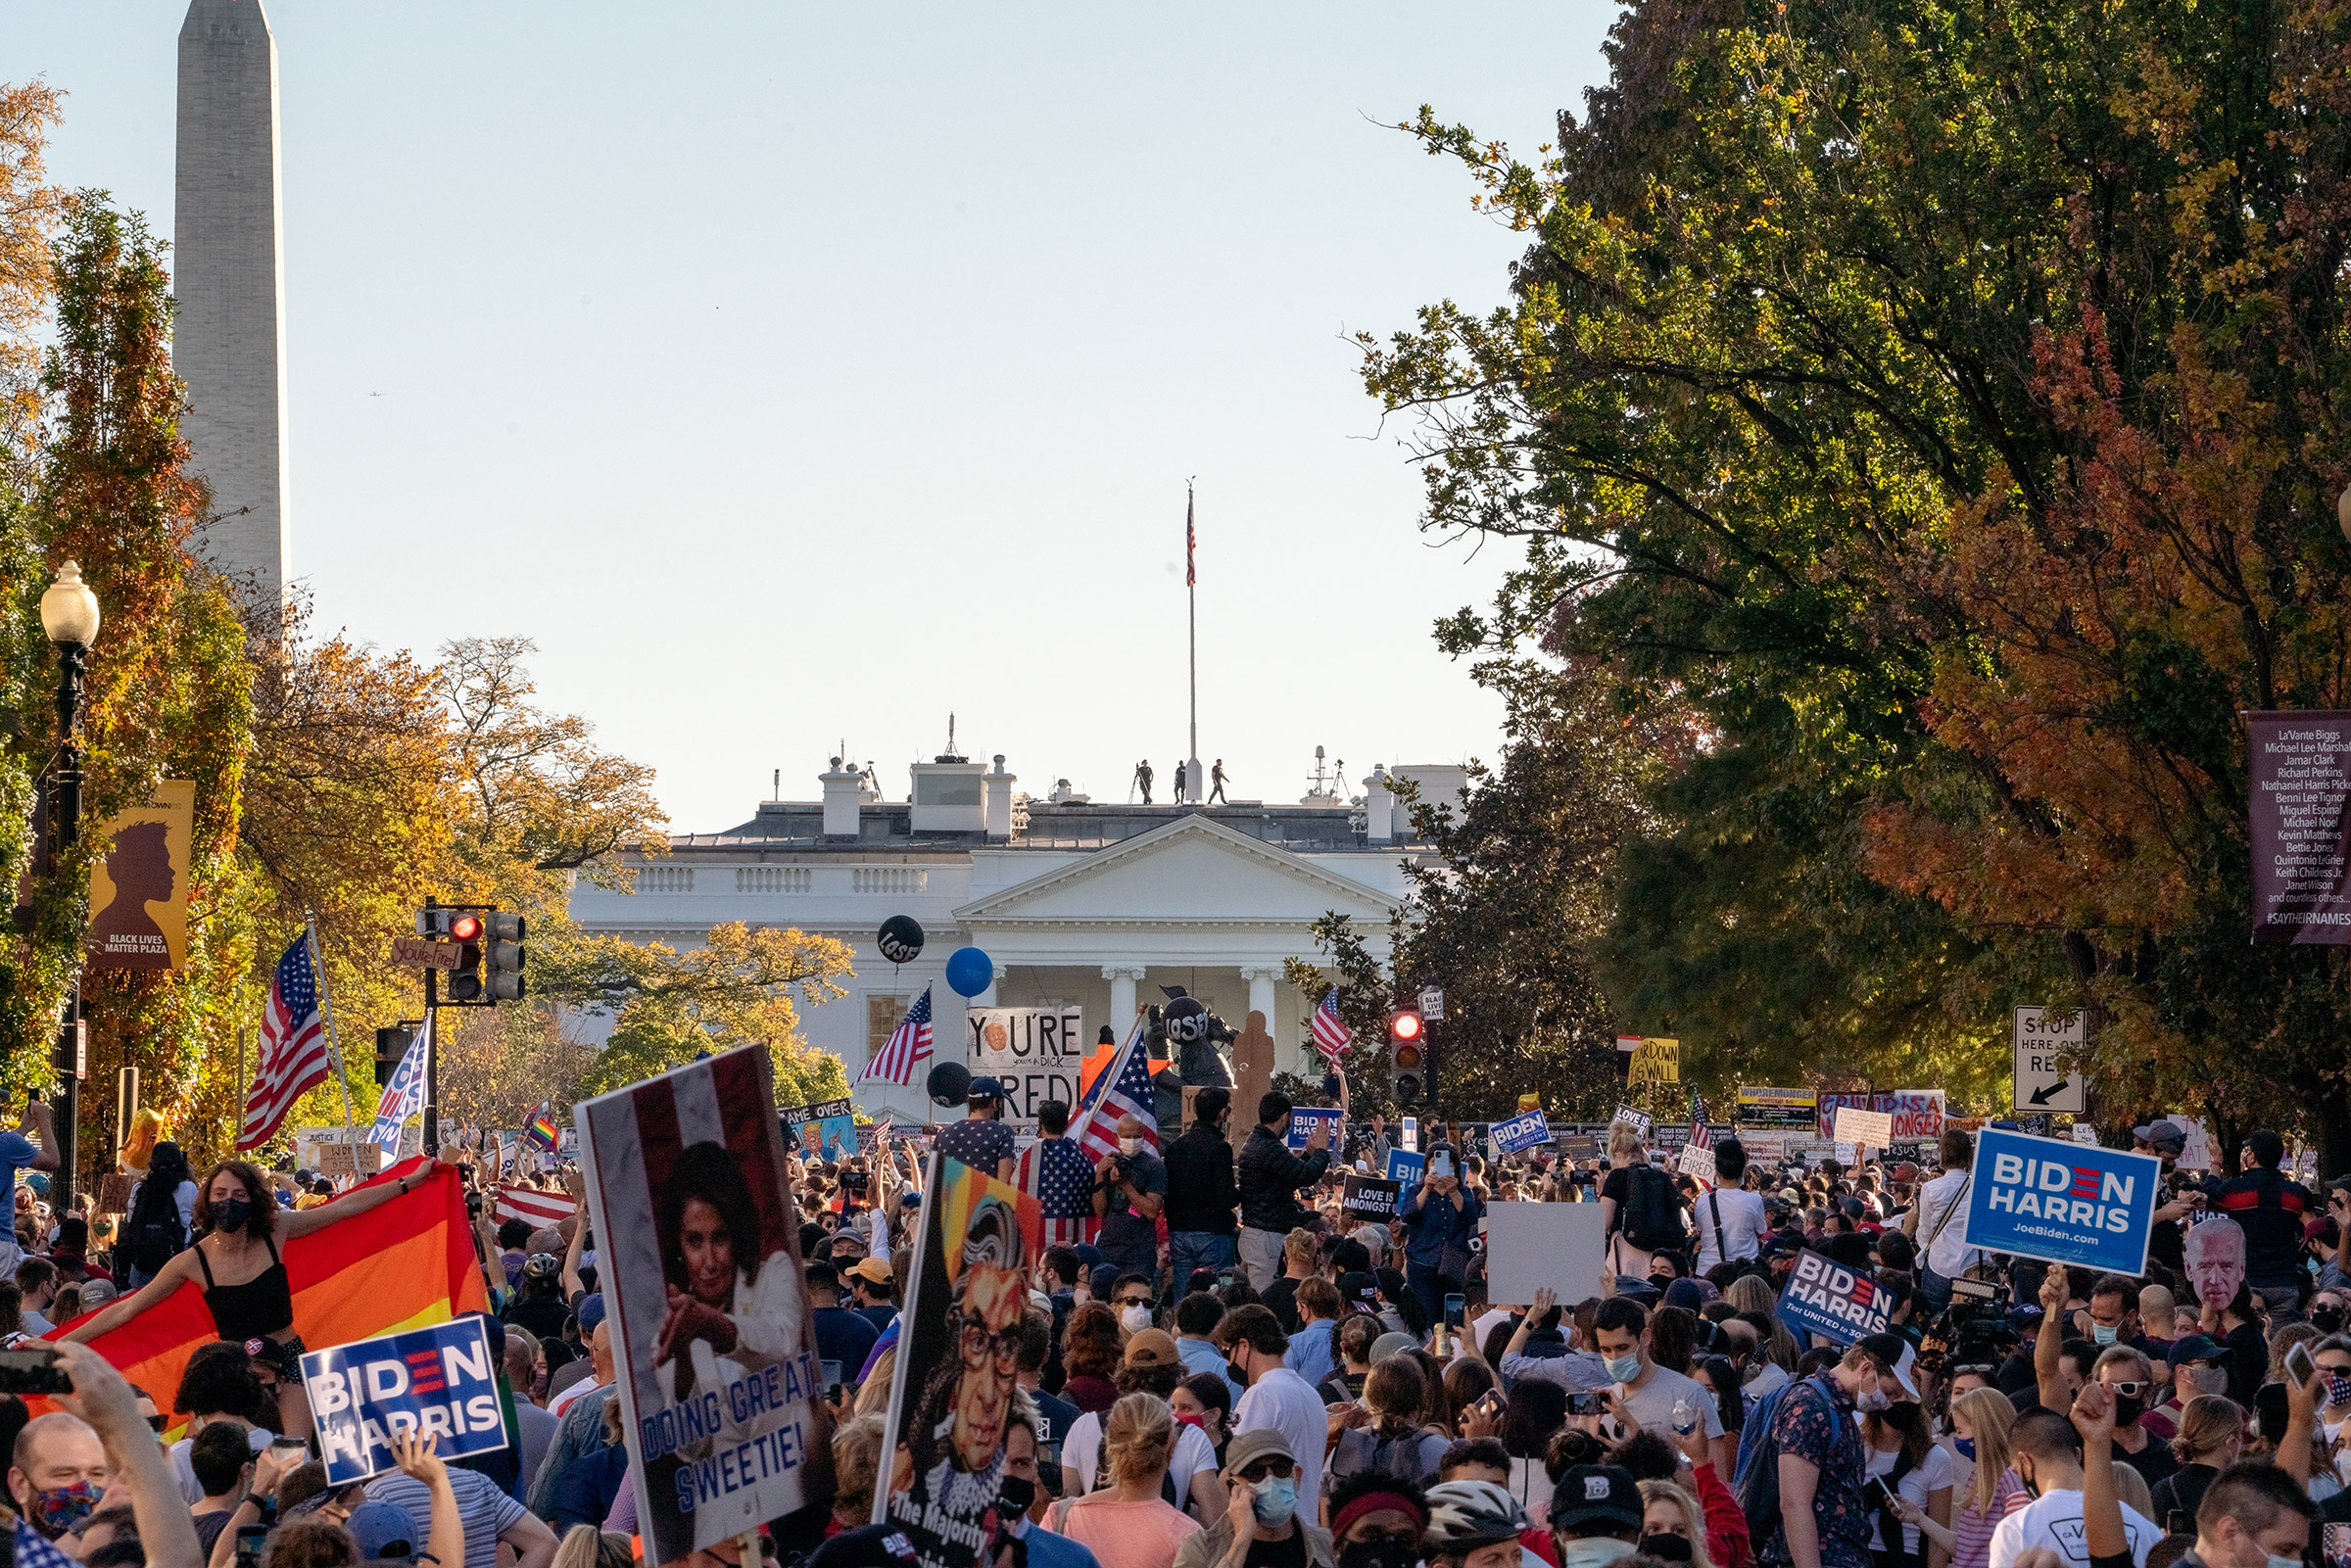 Celebrations erupted near the White House in Washington, D.C., after Biden was declared the winner of the election.